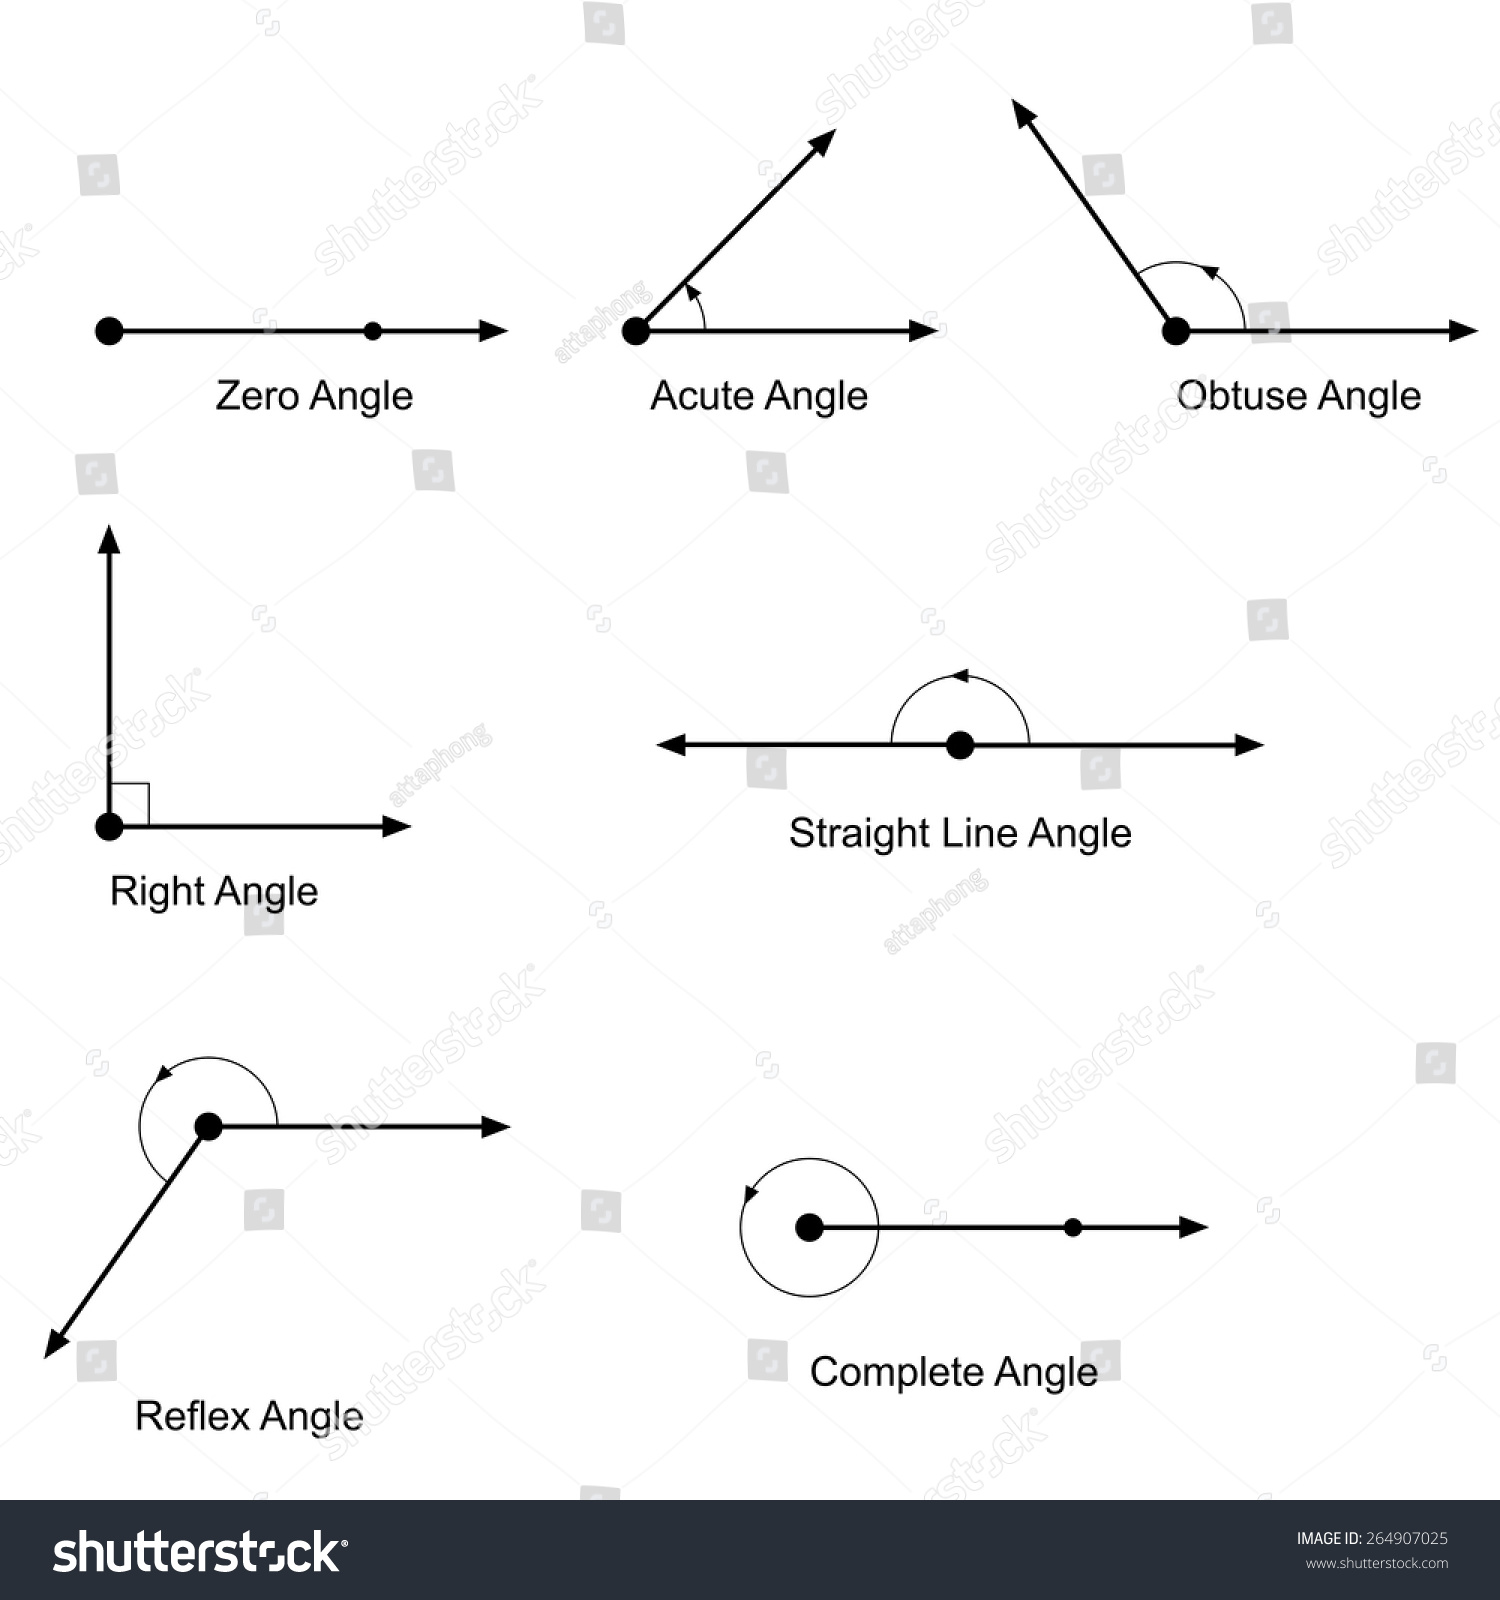 Types Of Angles Types Of Angles Types Of Angles Anchor Chart Geogebra Applet Types Of Angles